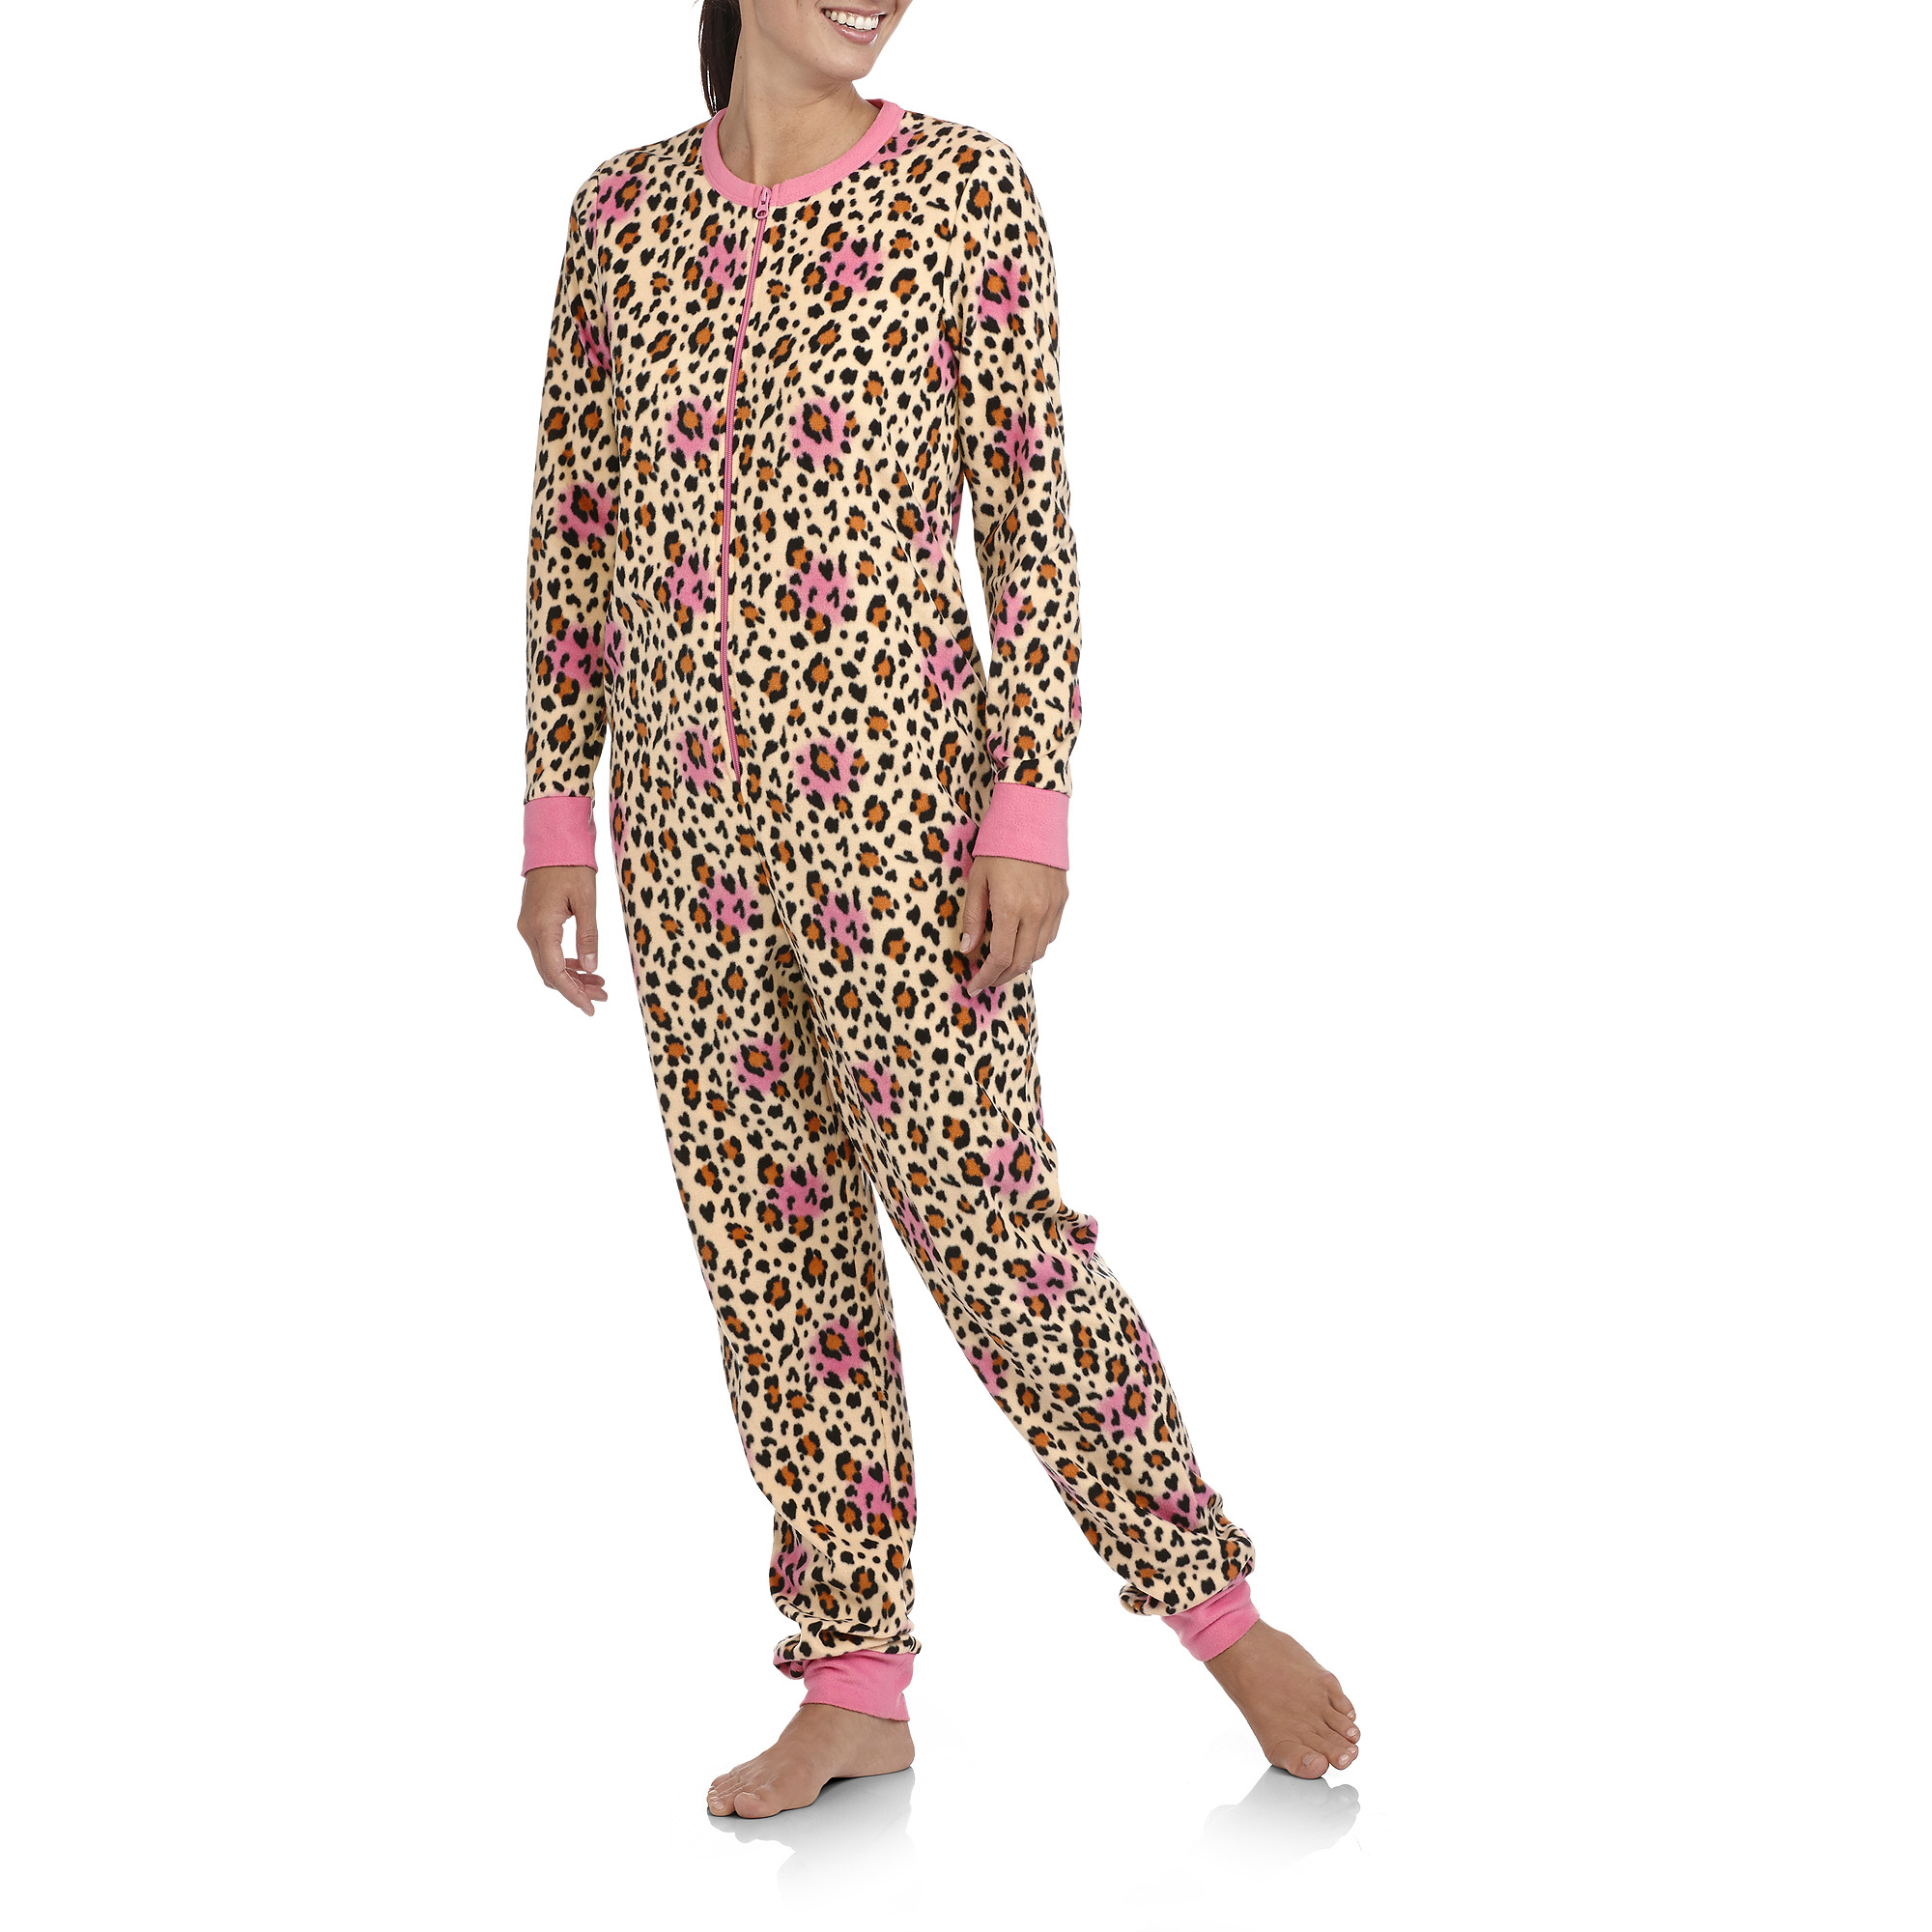 4ef5c64e2b09 Women s Micro Fleece One-Piece Pajamas - Walmart.com